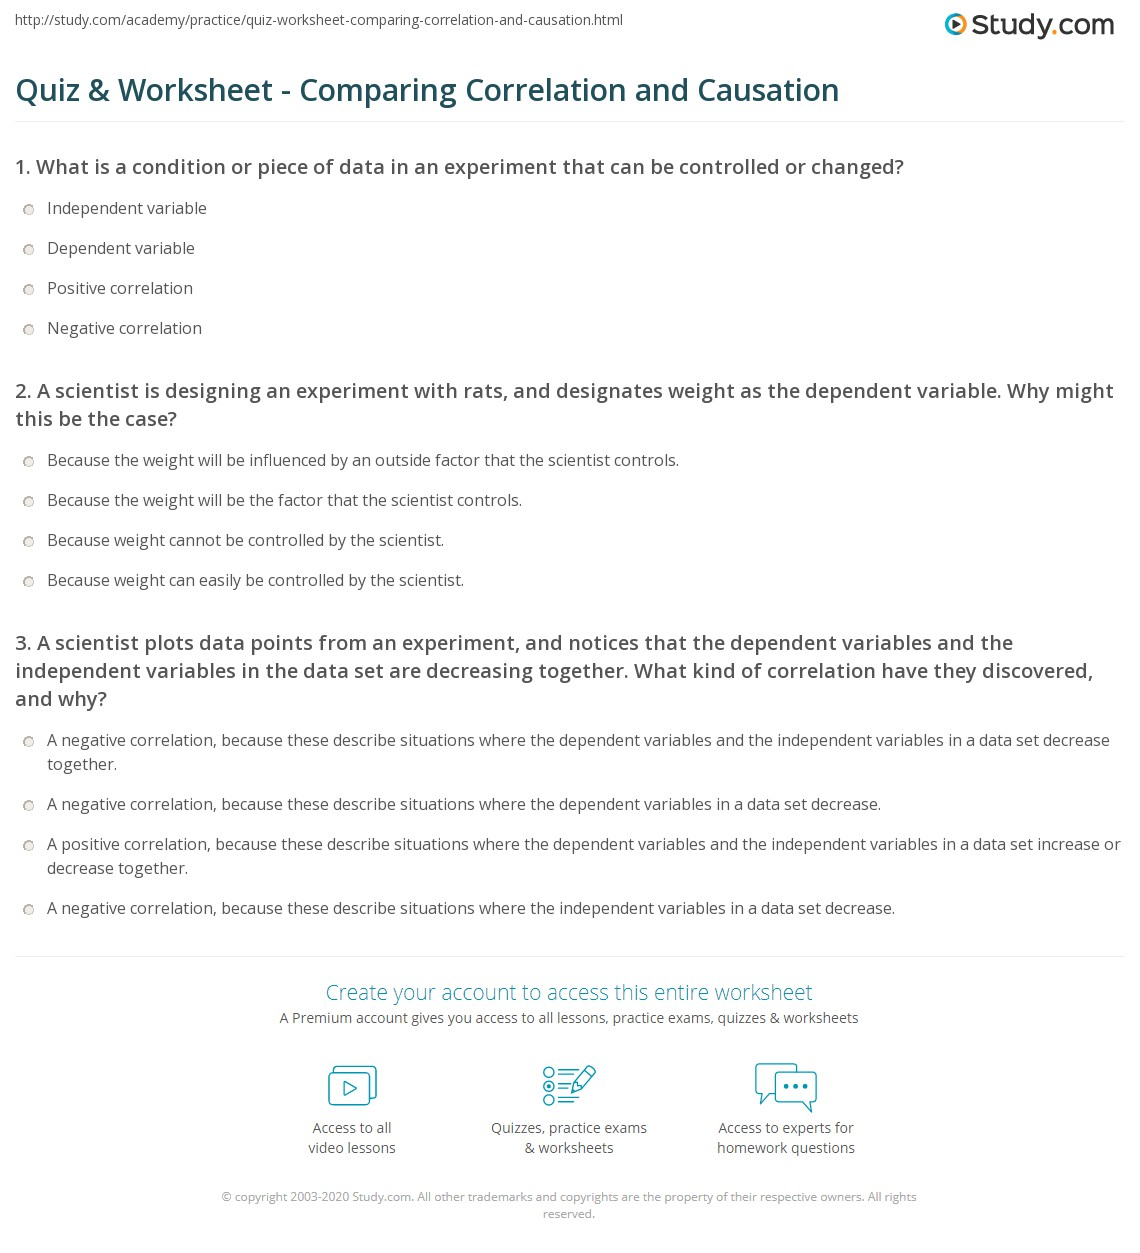 Aldiablosus  Mesmerizing Quiz Amp Worksheet  Comparing Correlation And Causation  Studycom With Likable Print Correlation Vs Causation Differences Amp Definition Worksheet With Nice Kindergarten Subtraction Worksheets Free Also Math Worksheets By Grade In Addition Step  Worksheets And Multiple Worksheets In Excel As Well As Mechanical Weathering Worksheet Additionally Preschool Number Writing Worksheets From Studycom With Aldiablosus  Likable Quiz Amp Worksheet  Comparing Correlation And Causation  Studycom With Nice Print Correlation Vs Causation Differences Amp Definition Worksheet And Mesmerizing Kindergarten Subtraction Worksheets Free Also Math Worksheets By Grade In Addition Step  Worksheets From Studycom